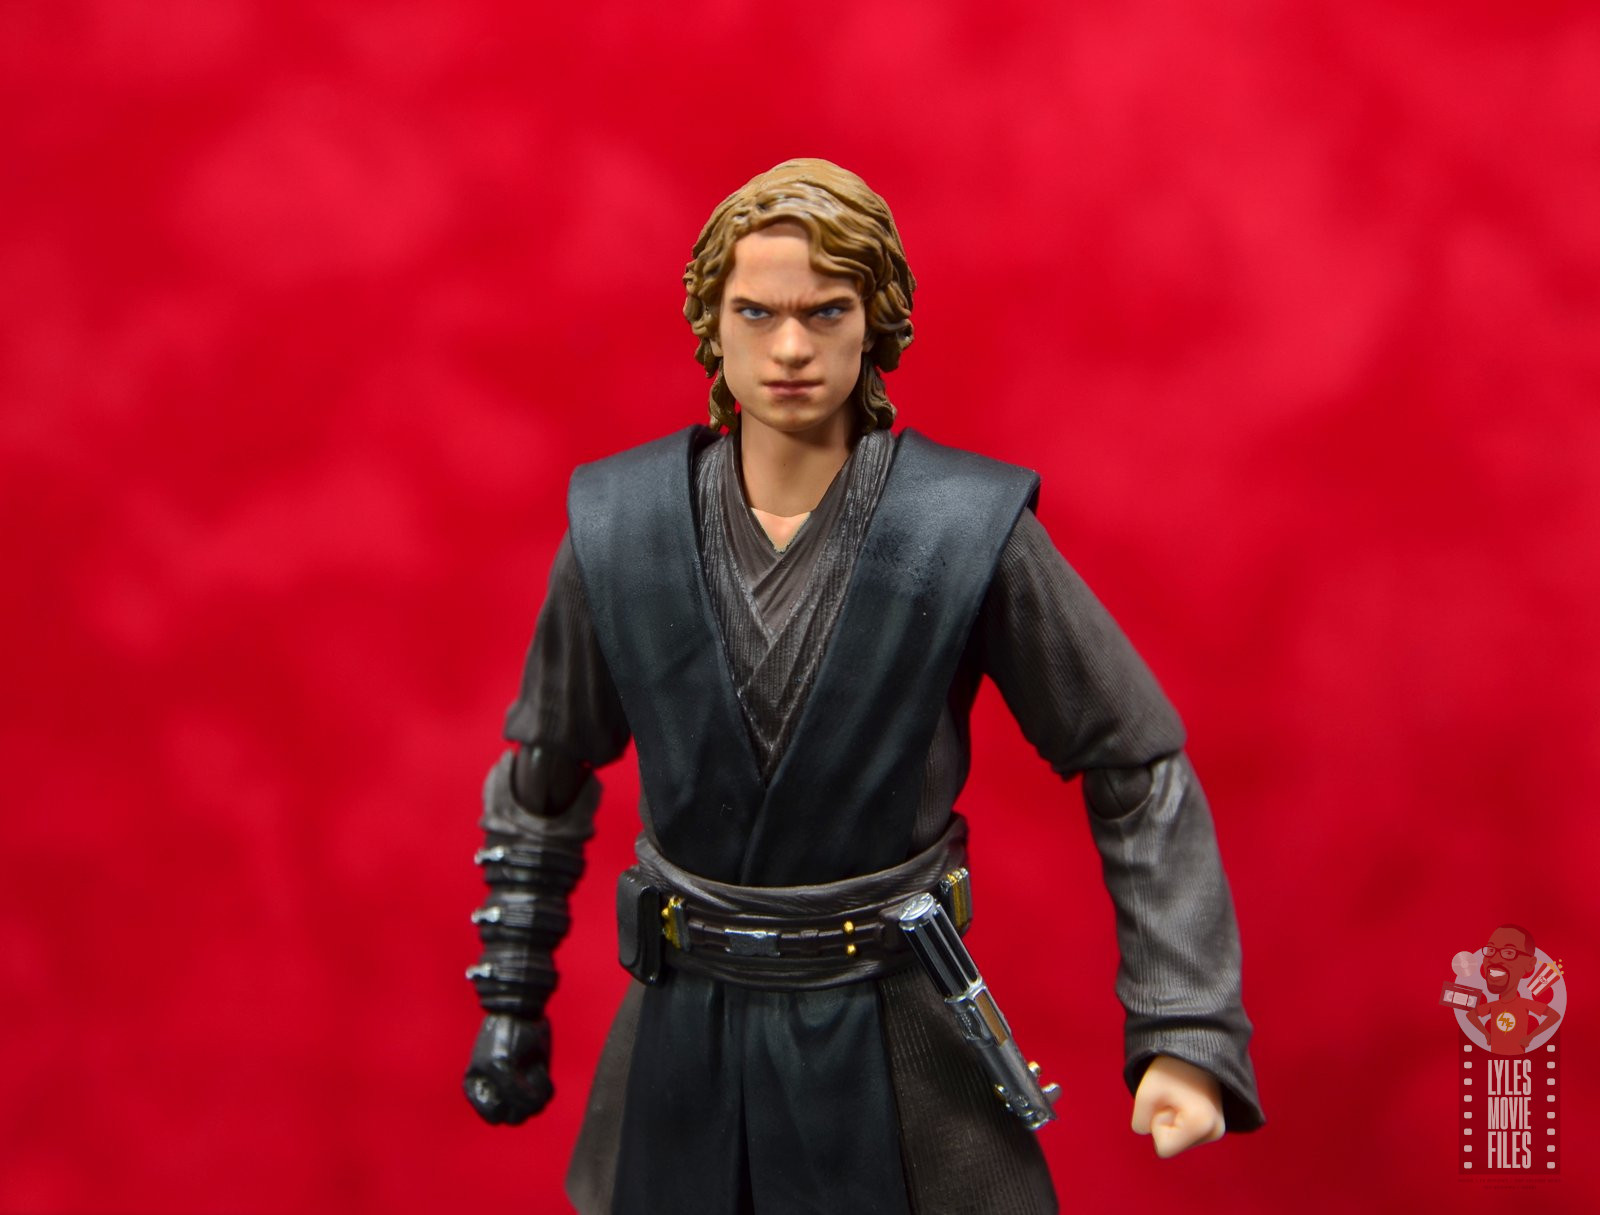 Sh Figuarts Anakin Skywalker Figure Review Revenge Of The Sith Lyles Movie Files